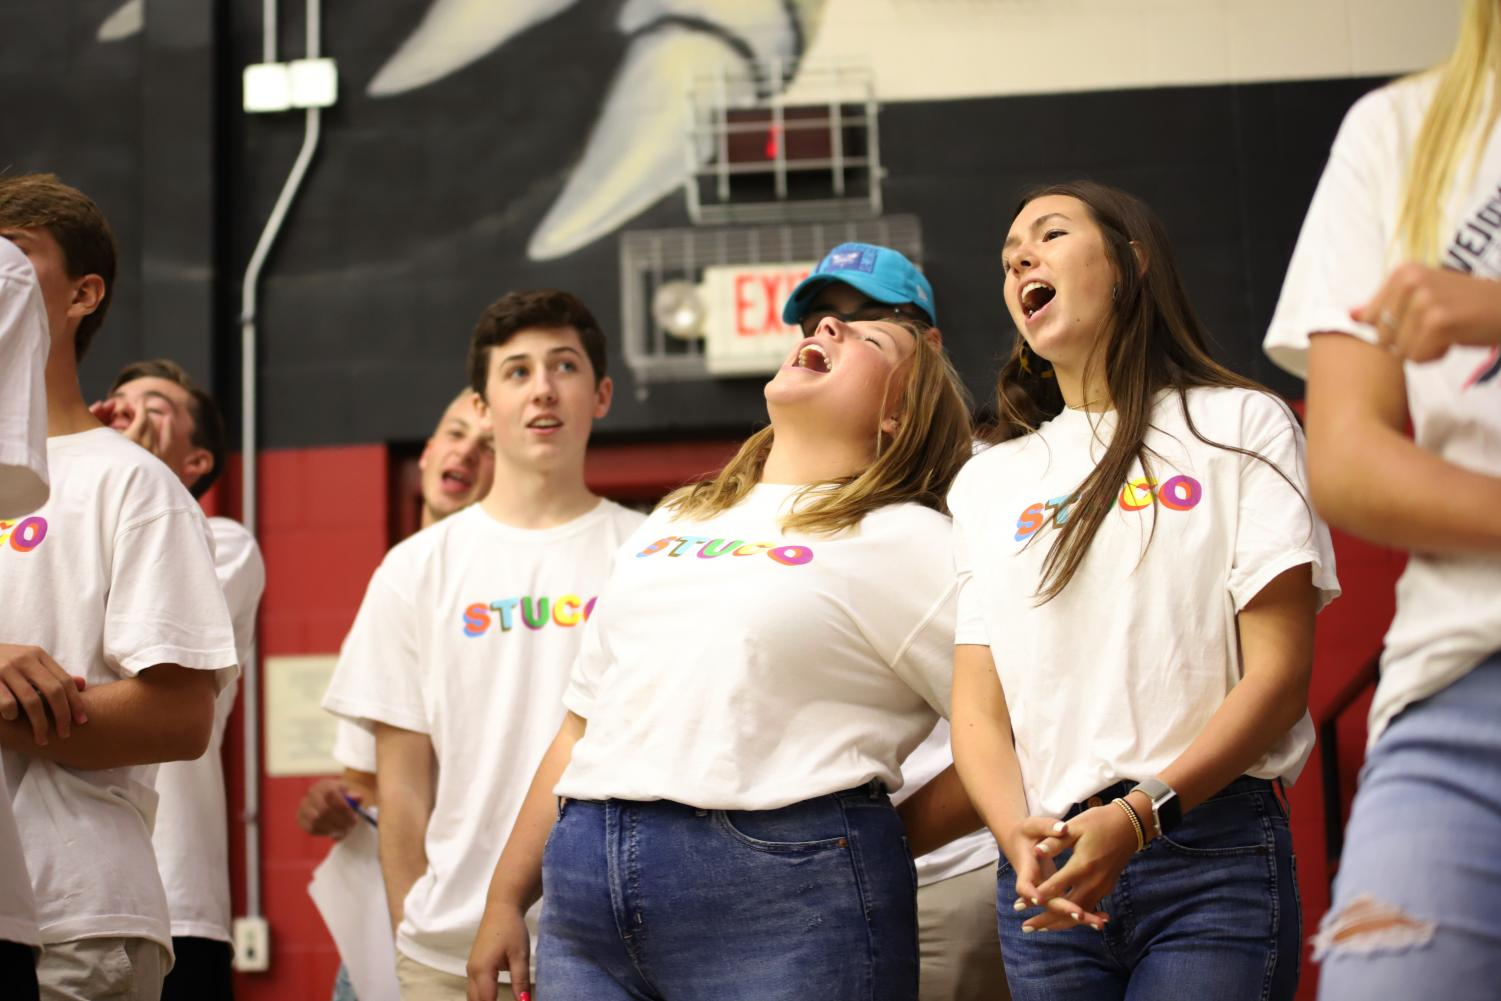 Senior+Student+council+president+Darby+Price+and+vice+president+Lily+McCutcheon+yell+out+the+fight+song+at+the+end+of+the+pep-rally.+The+pep-rally+was+ran+by+the+Student+Council+in+attempt+to+create+a+visual+of+what+high+school+pep-rallies+will+be+like.